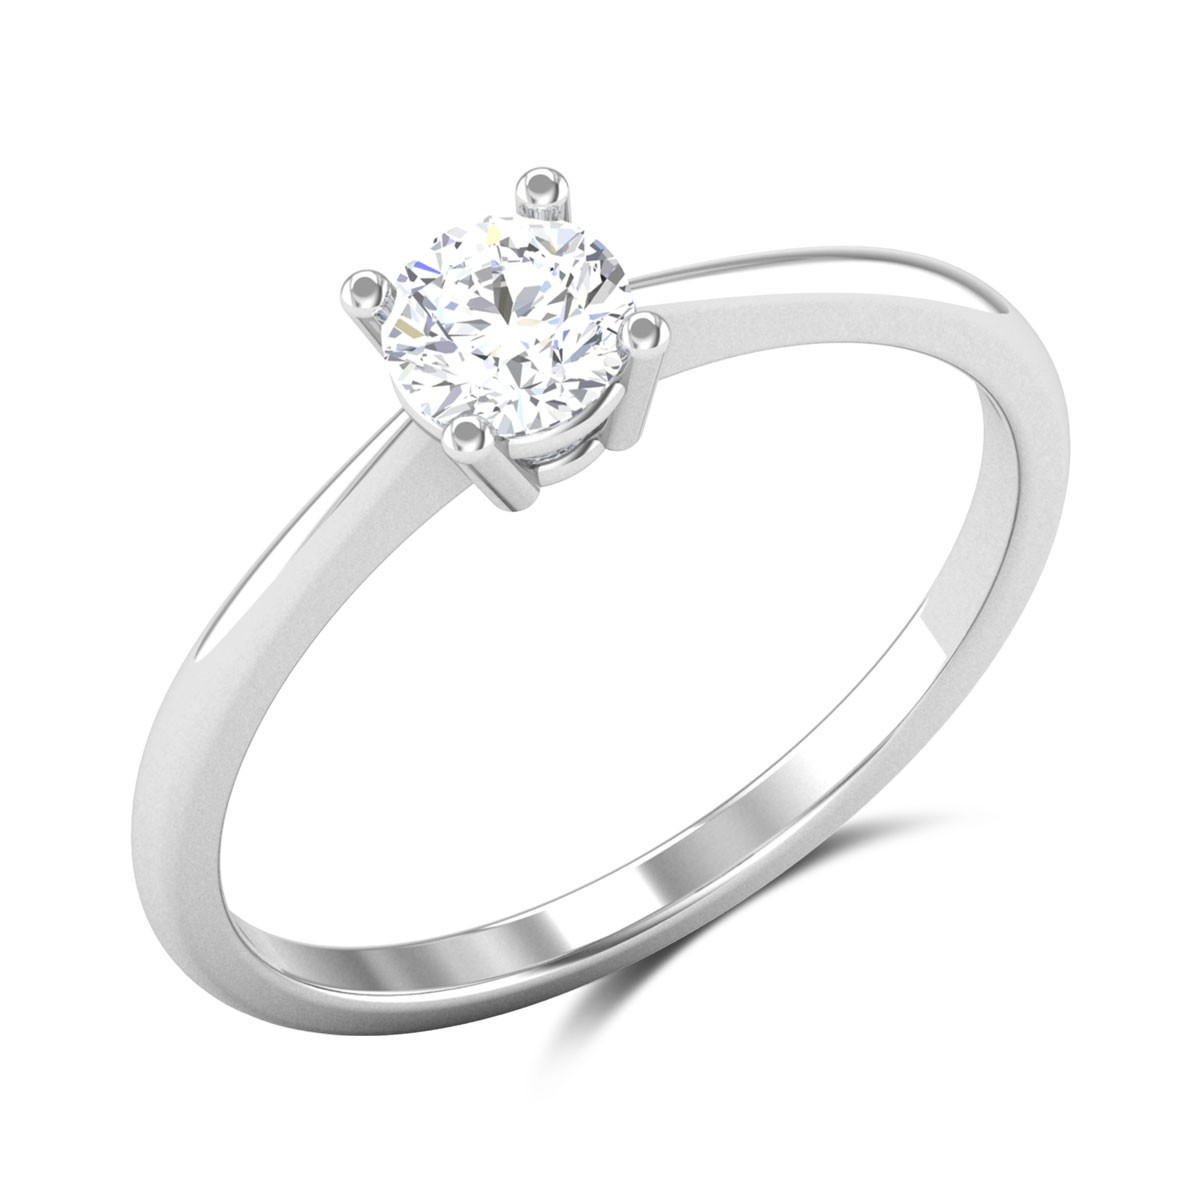 Airlia 4 Prong Solitaire Ring